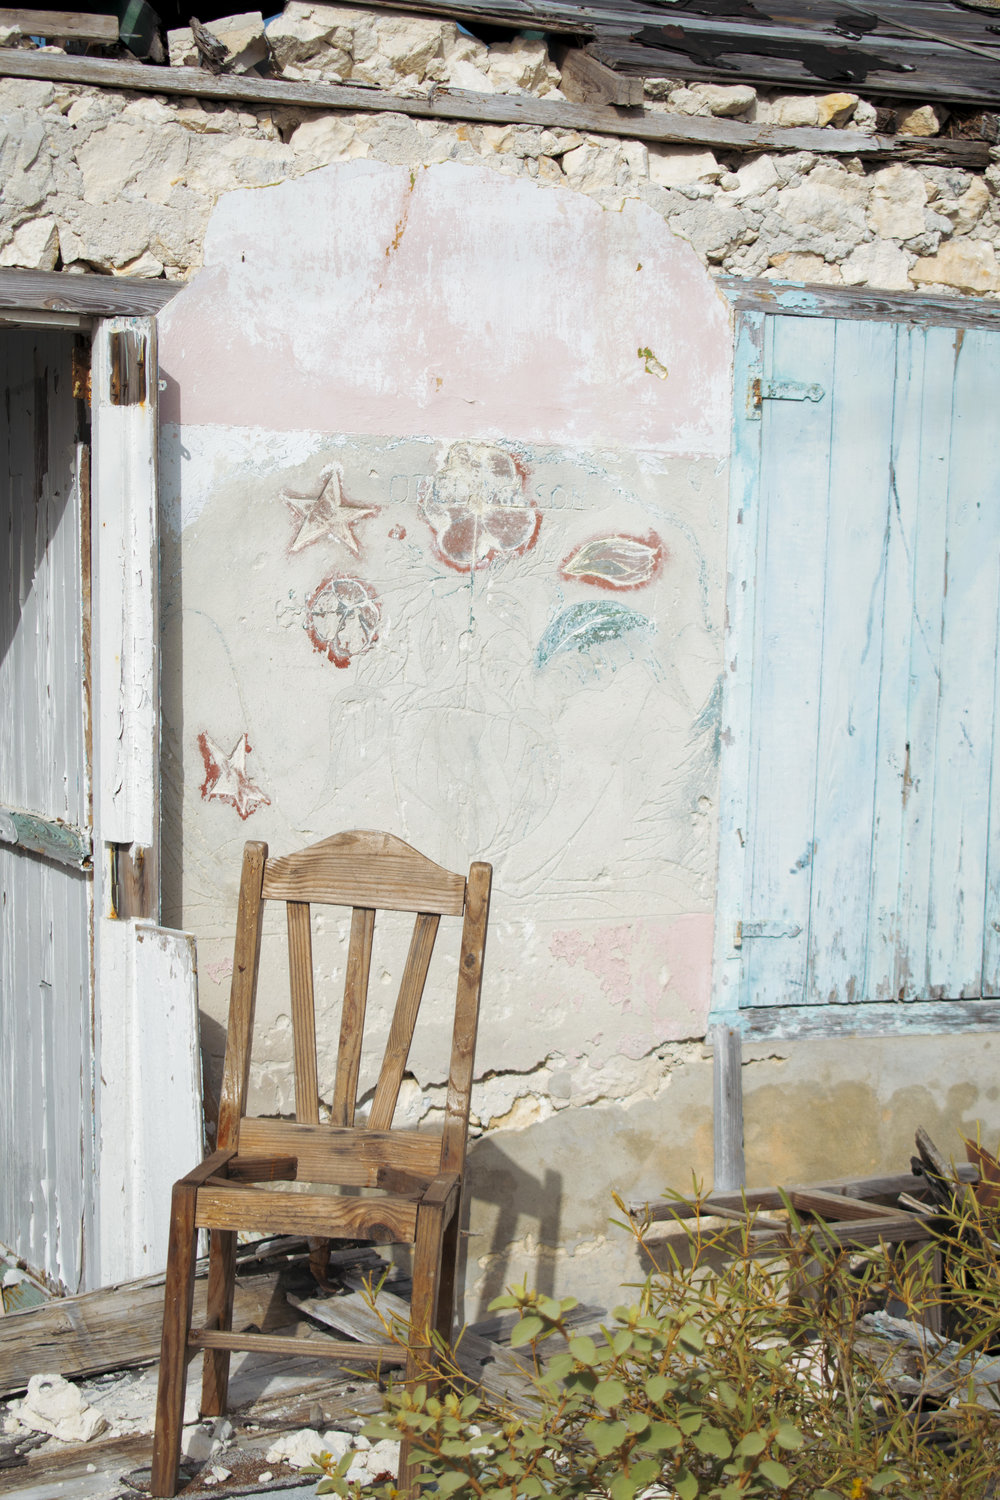 A lonely chair rests outside a house on Ragged Island. Photo by Ethan Knowles.